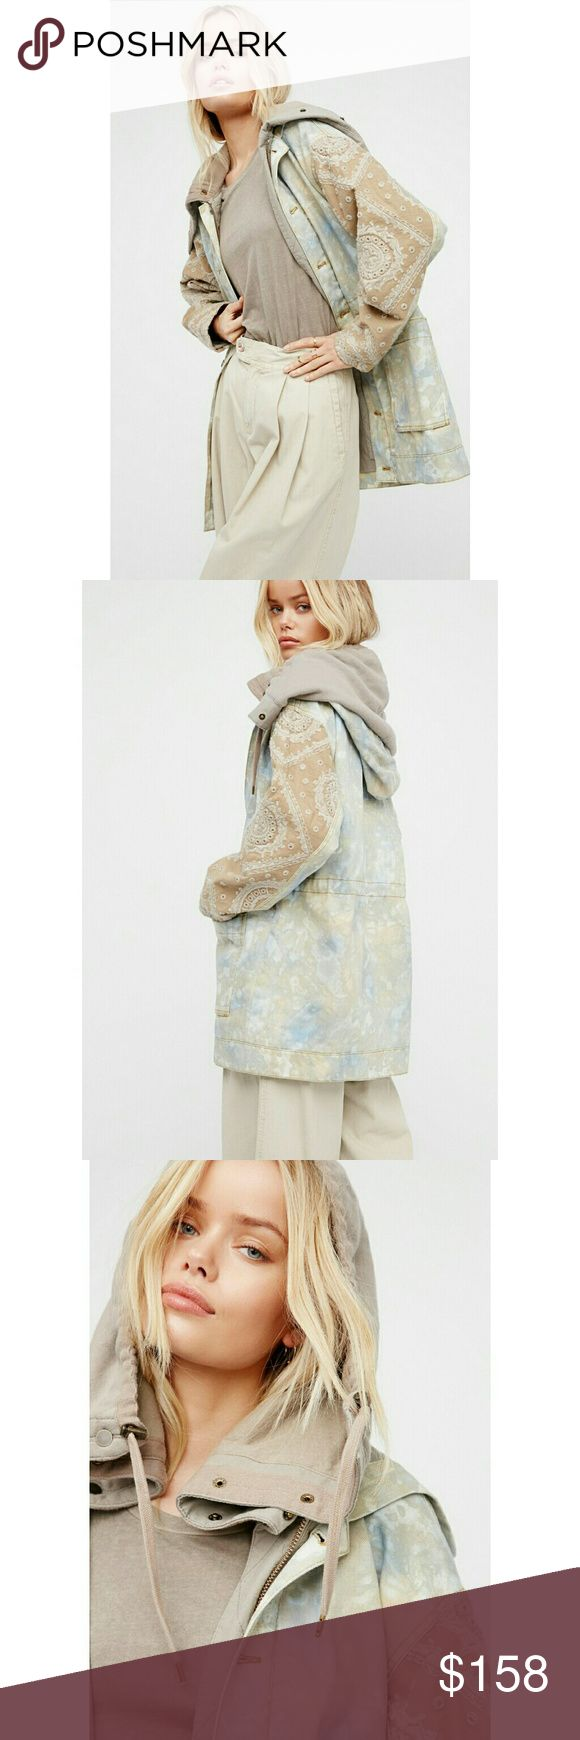 NWT, Free People Layered Tie Dye Parka Jacket Boho-inspired tie dye parka featuring beautiful embroidery along the sleeves and an effortlessly layered look with a doubled hood detail. Drawstring at the waist Front button and zipper closures Two large front pockets Lined 100% Cotton Machine Wash Cold Imported BNWTA Free People Jackets & Coats